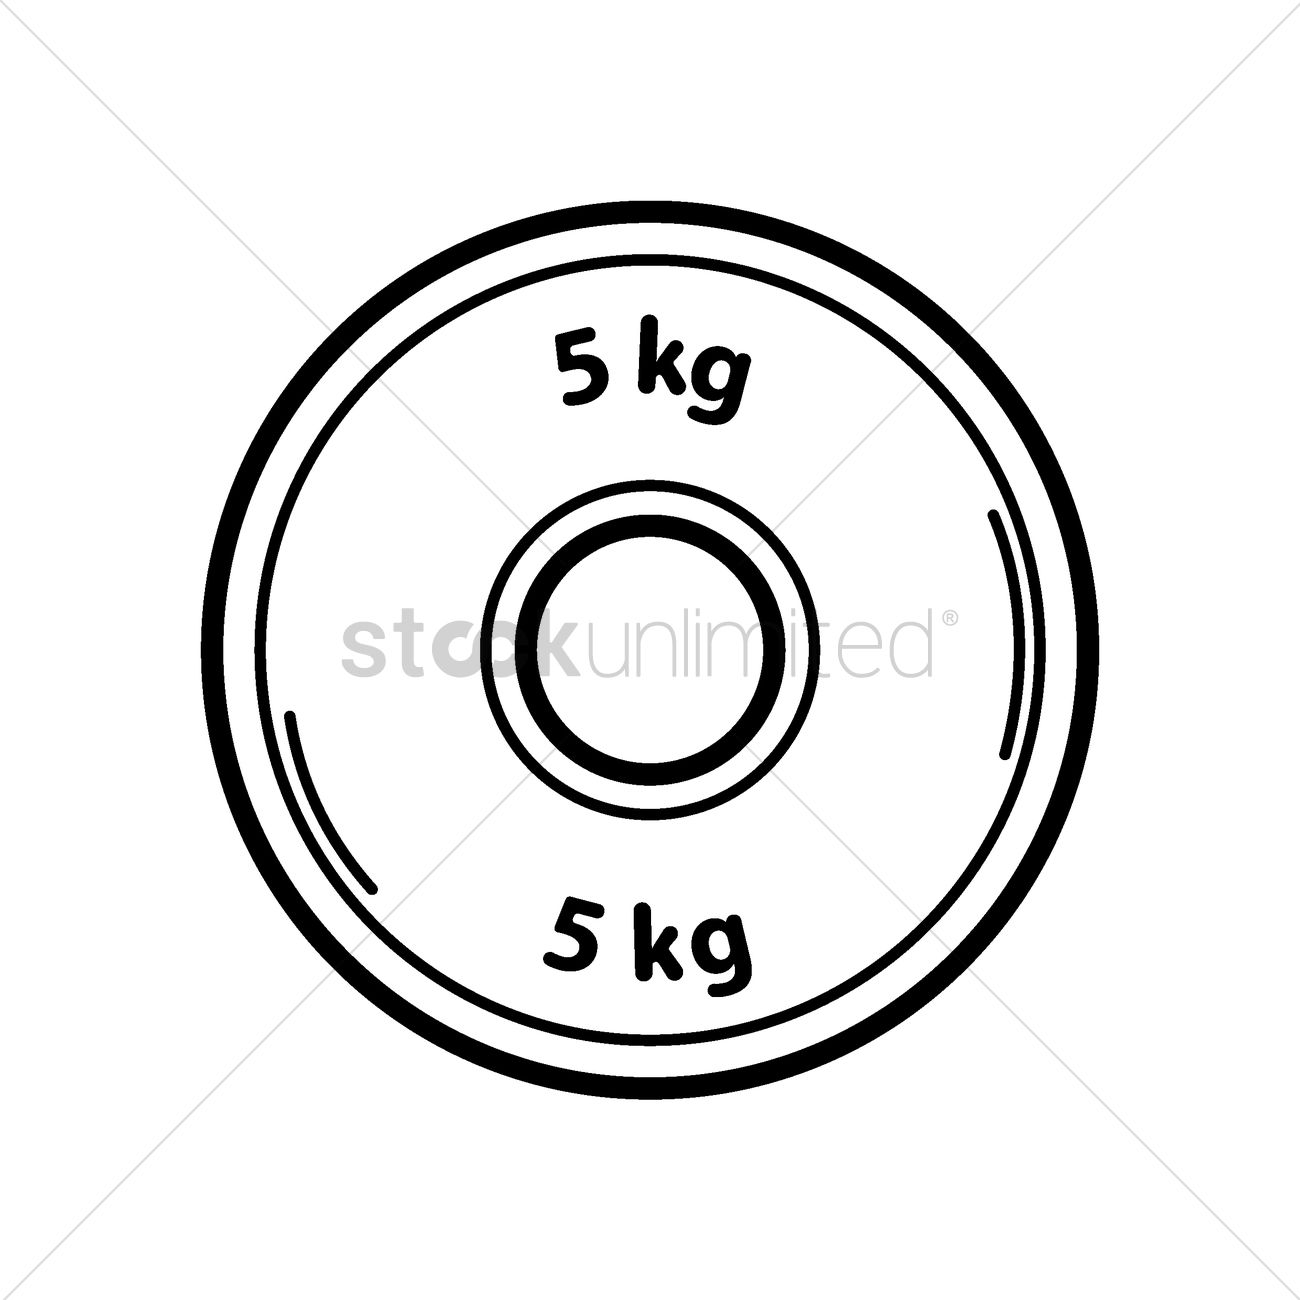 1300x1300 5kg Weight Plate Vector Image